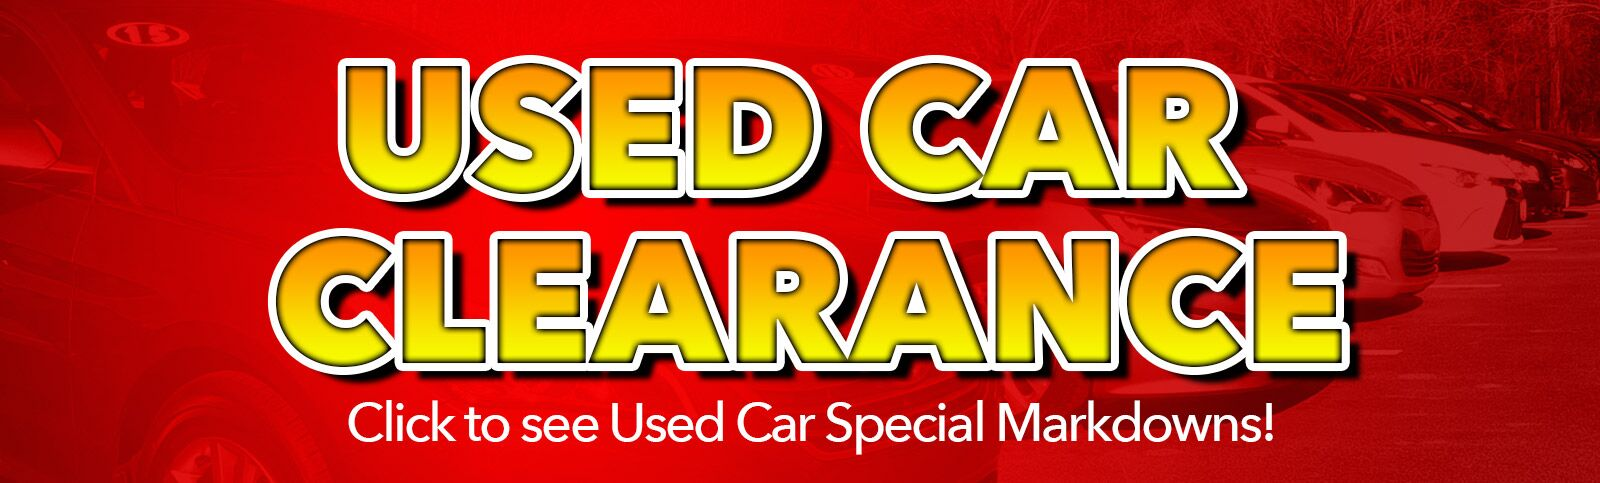 Used Car Clearance